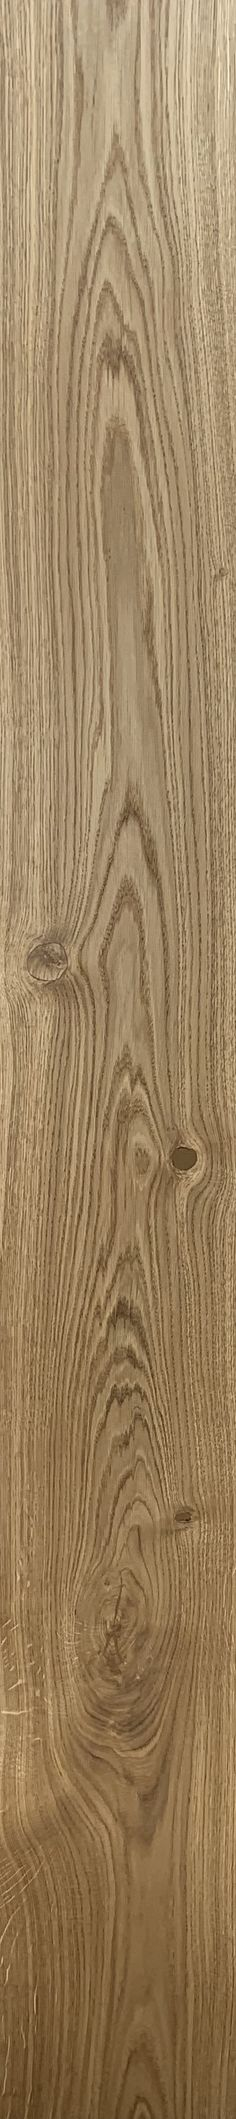 Oak Natural - Top quality European oak prefinished with hands engineered wood flooring. Available as extremely long and wide planks.   Supply and Fitting UK.     #wideplankwoodfloors #engineeredhardwood #oaknatural #Europeanoakflooring #homedecor #wideplankflooringideas #parquetfloor